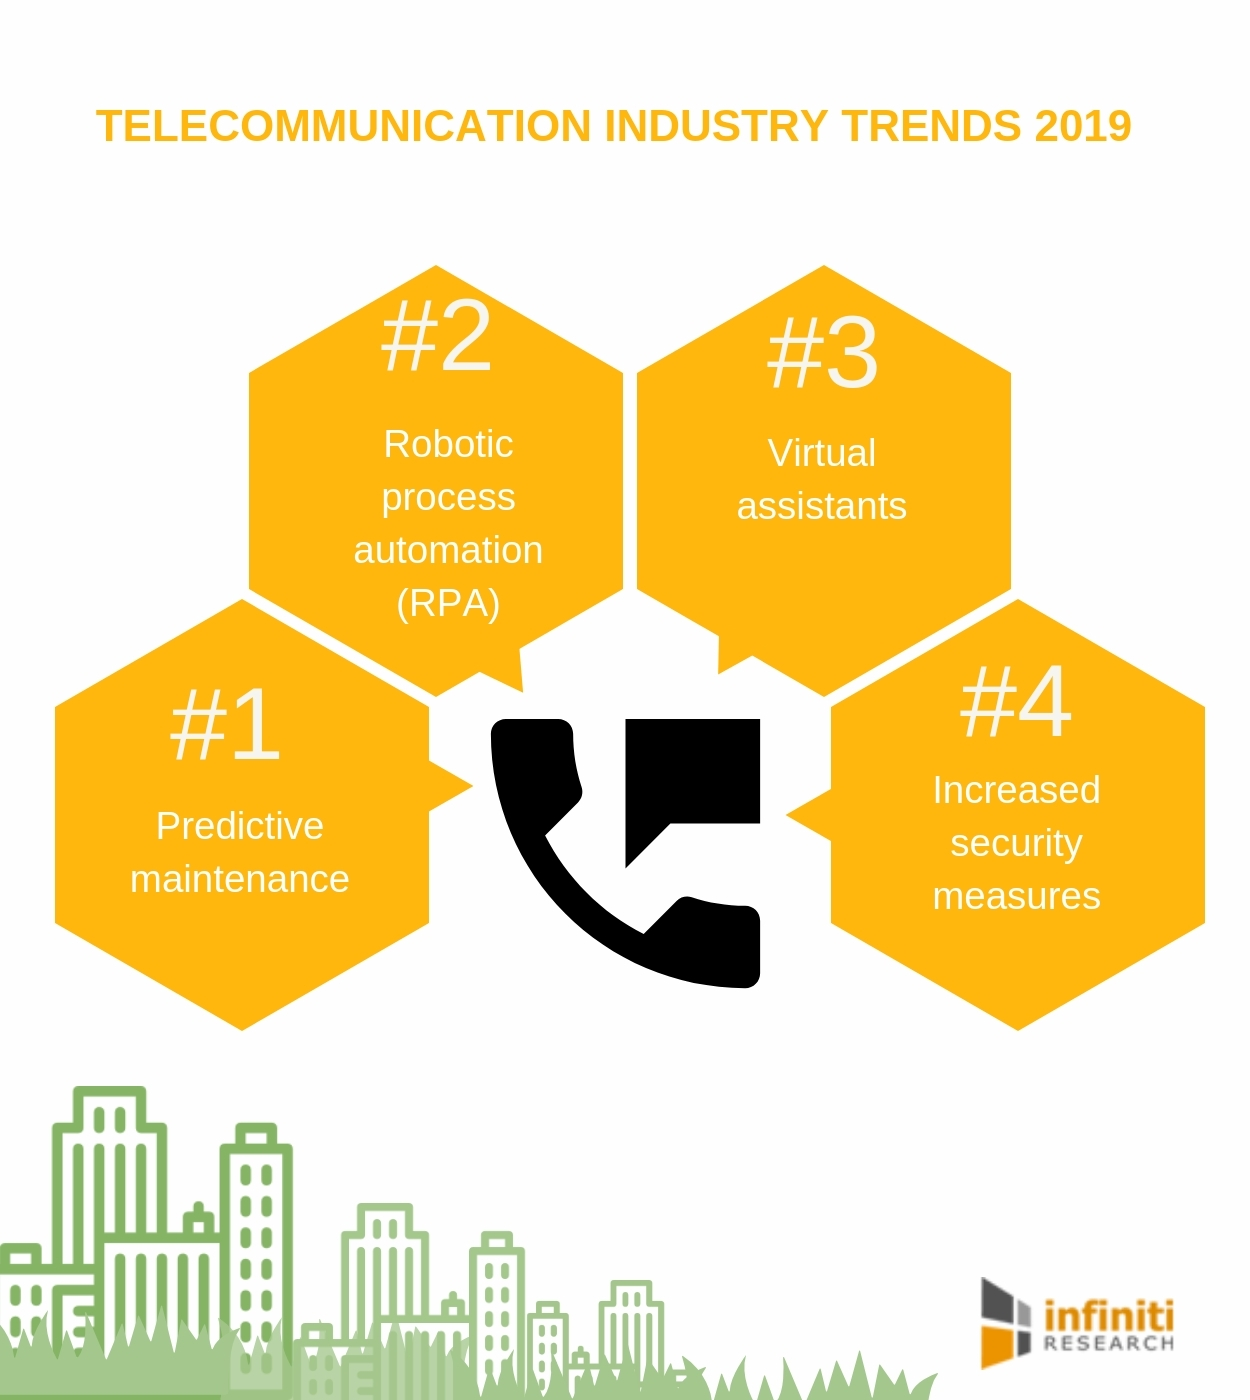 How Does the Future of Telecom Industry Look? | Infiniti